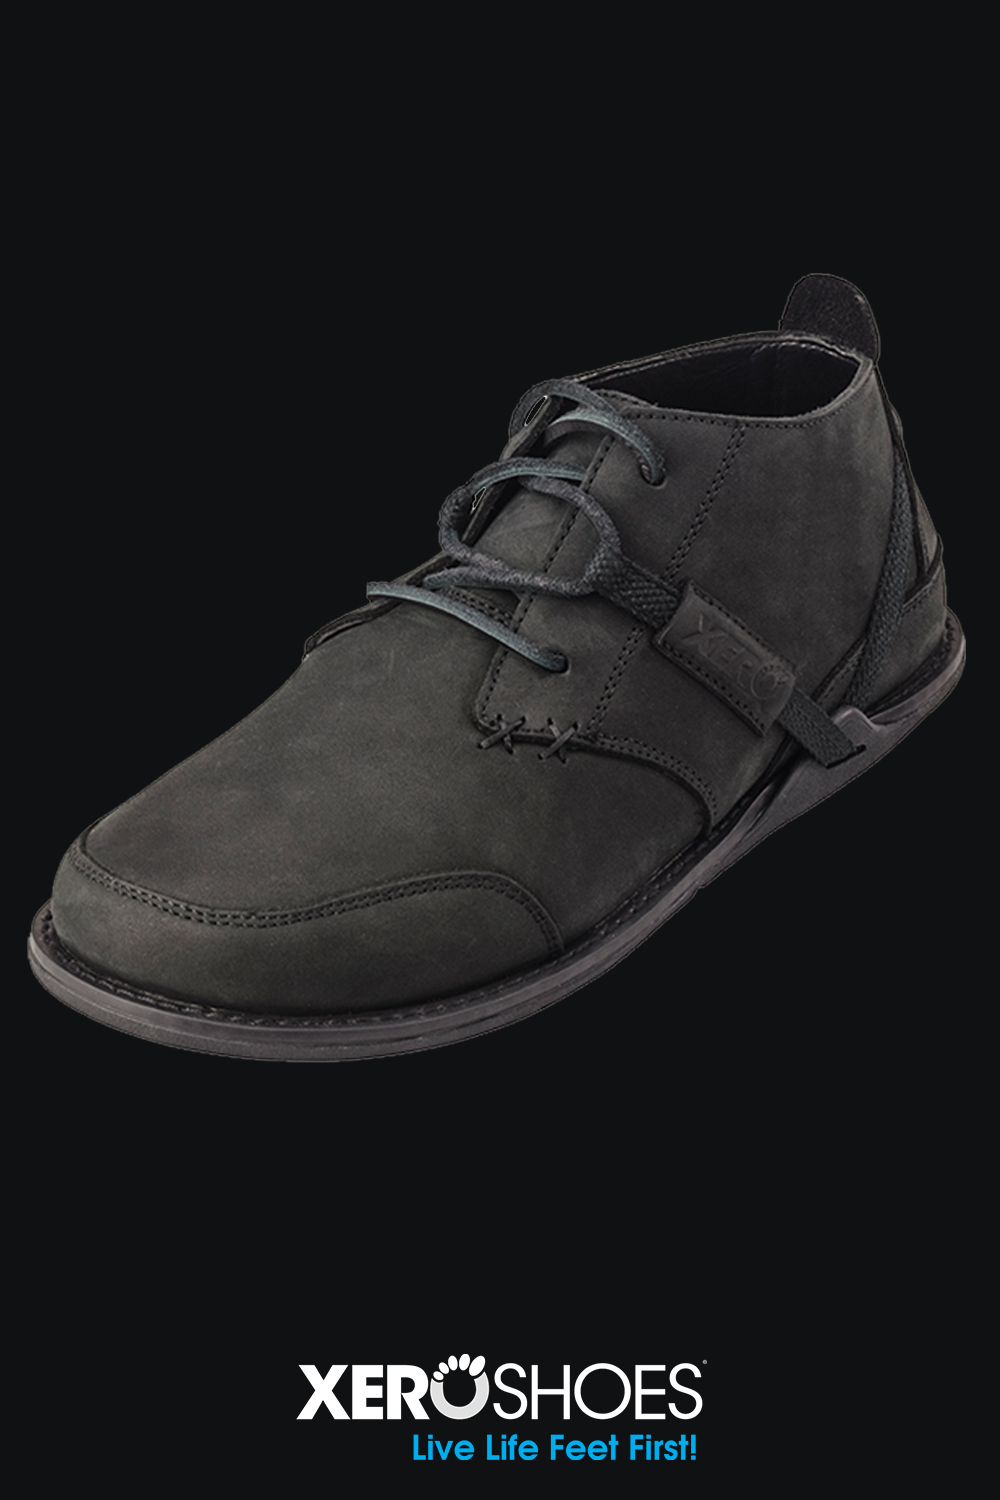 Looking For A More Work Ready Or Stylish Zero Drop Barefoot Shoe This Men S Minimalist Shoe Is Your Ans Comfortable Travel Shoes Minimalist Shoes Casual Shoes